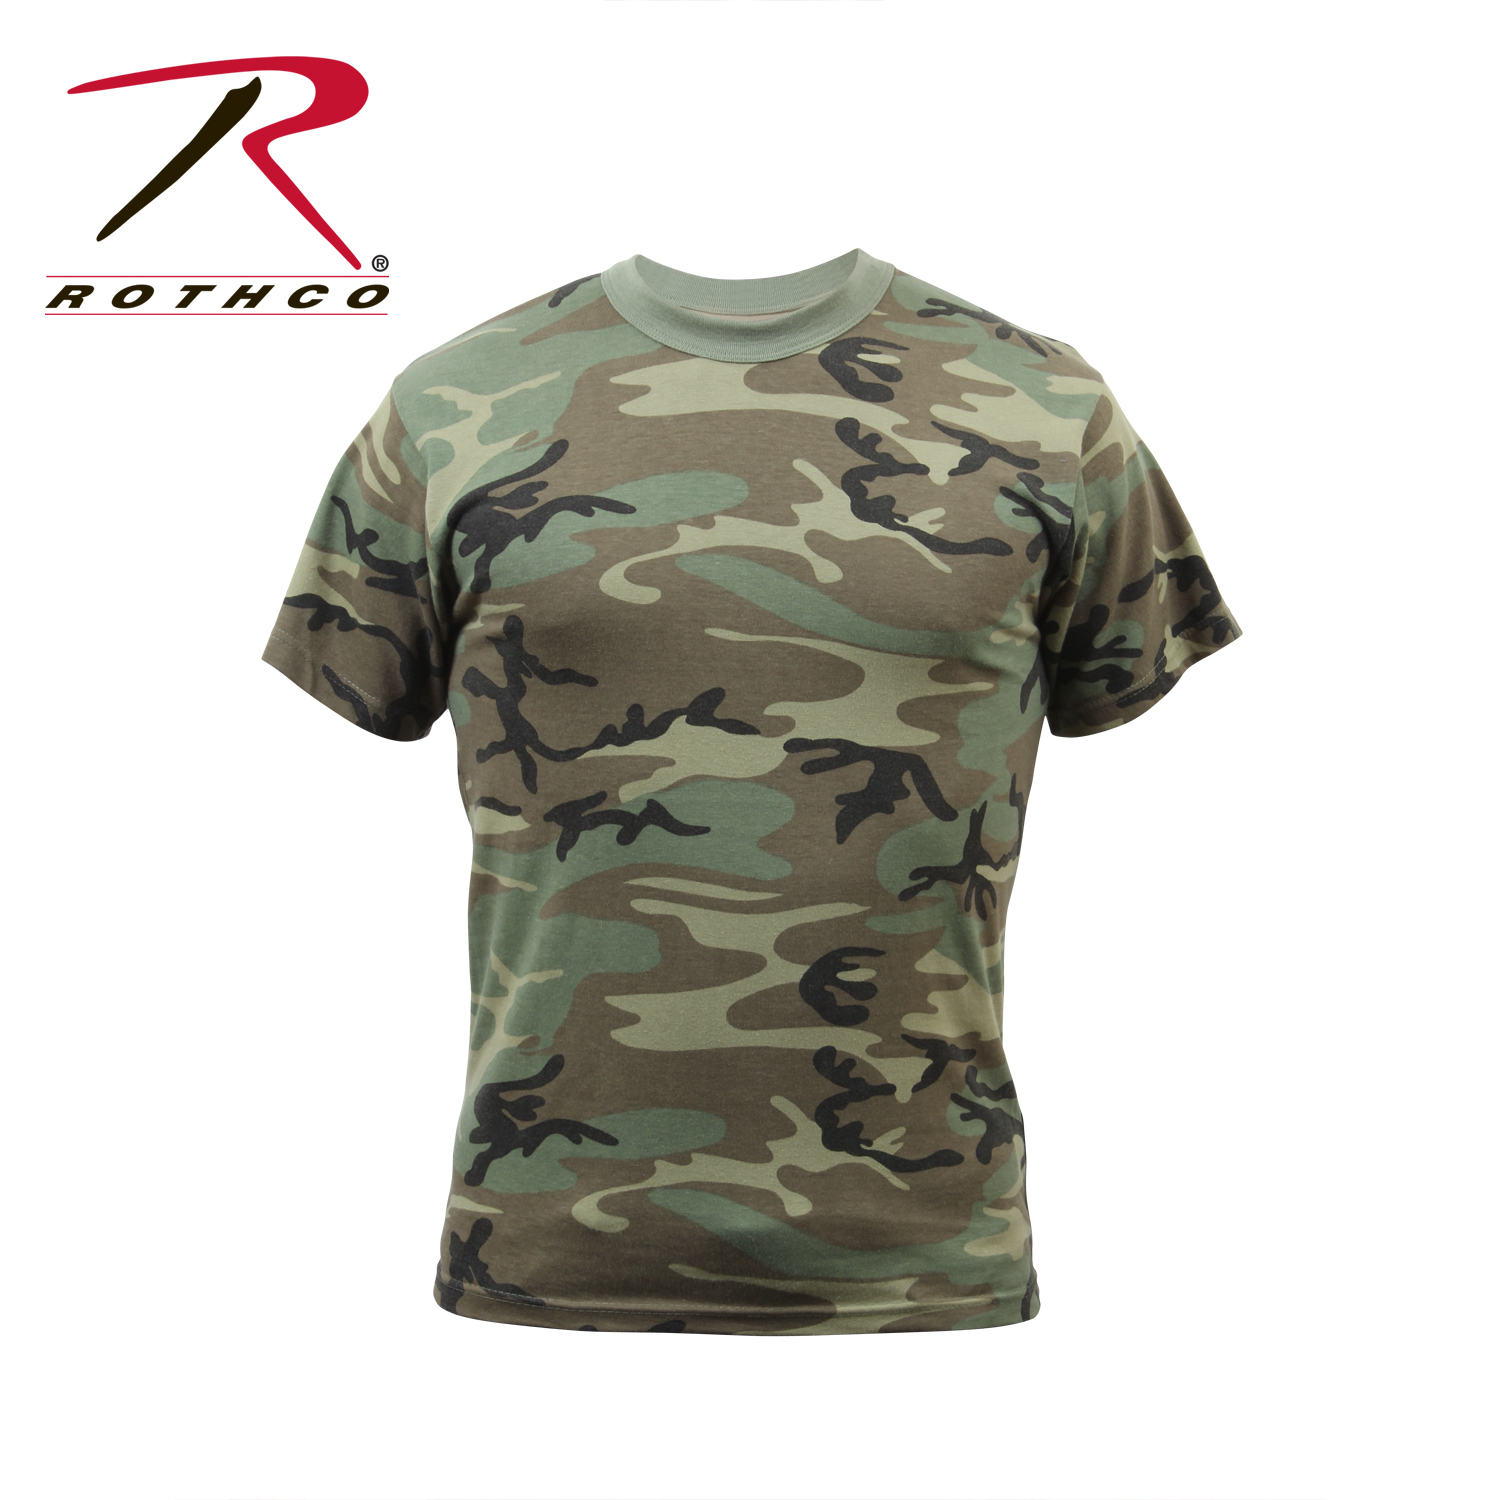 1c757a26 ... t-shirt,camouflage. Loading zoom